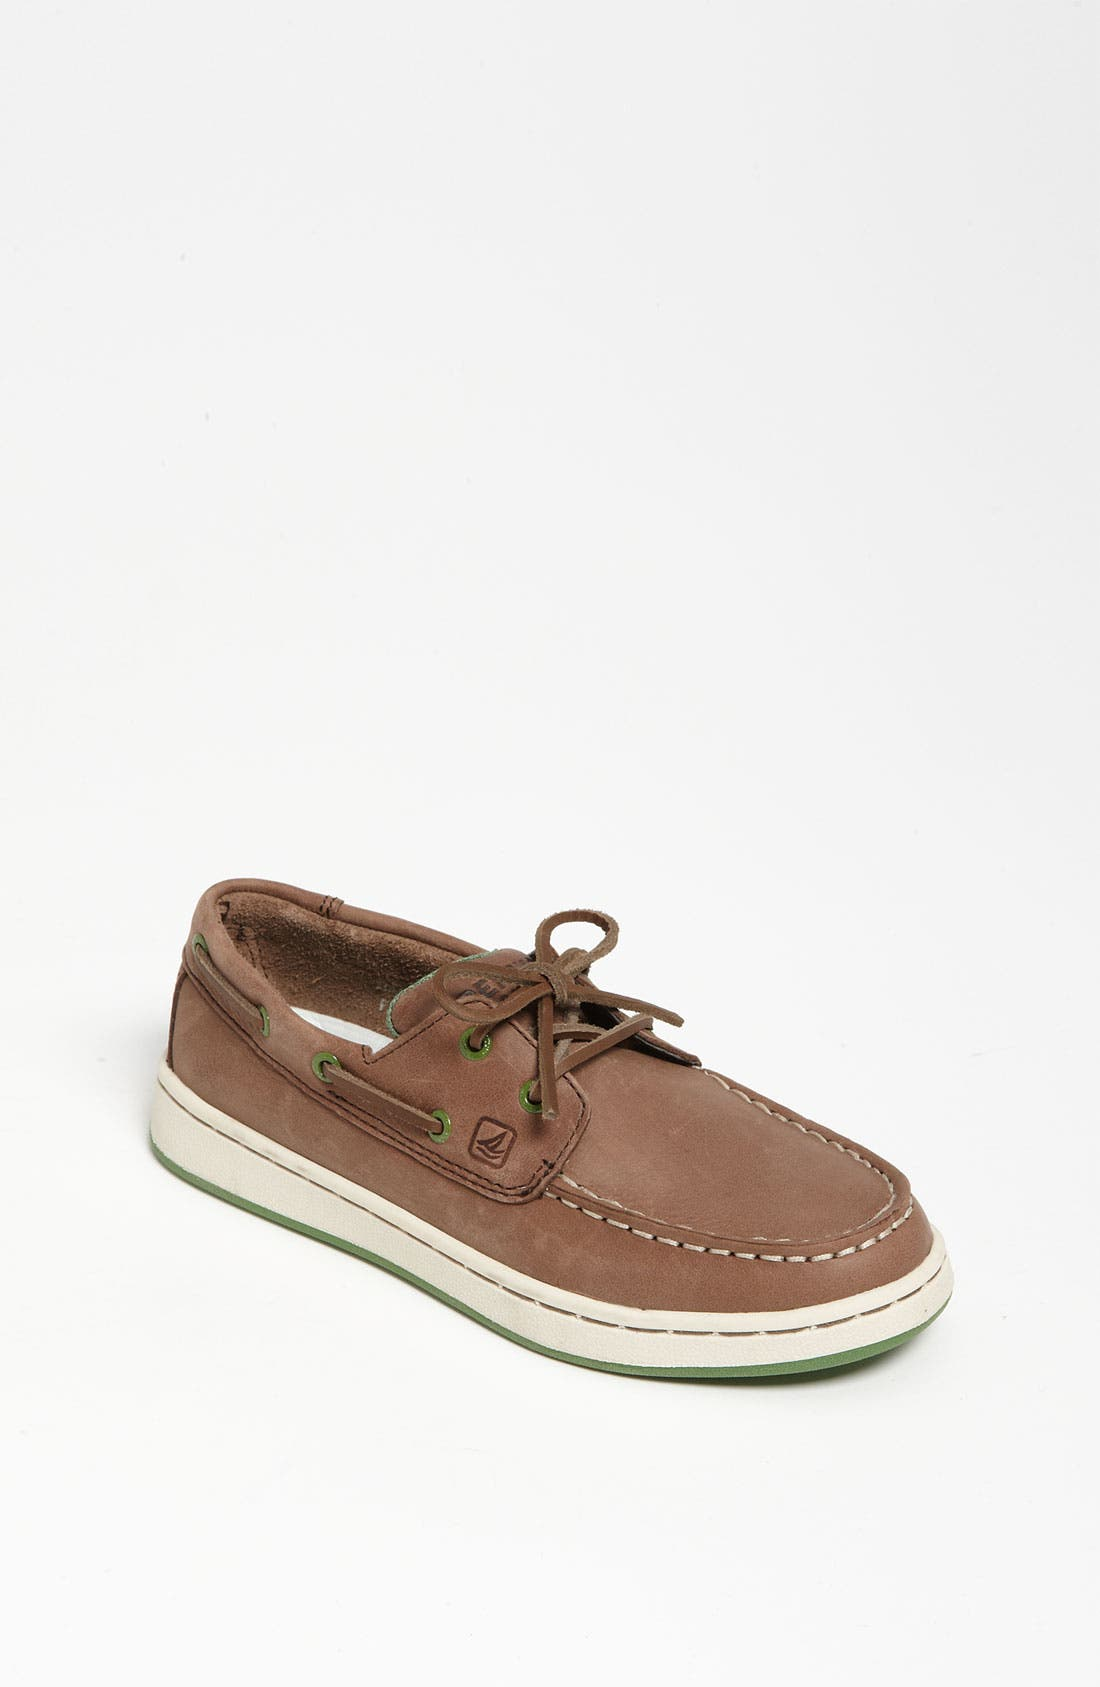 Main Image - Sperry Top-Sider® Kids 'Cup 2 Eye' Boat Shoe (Little Kid & Big Kid)